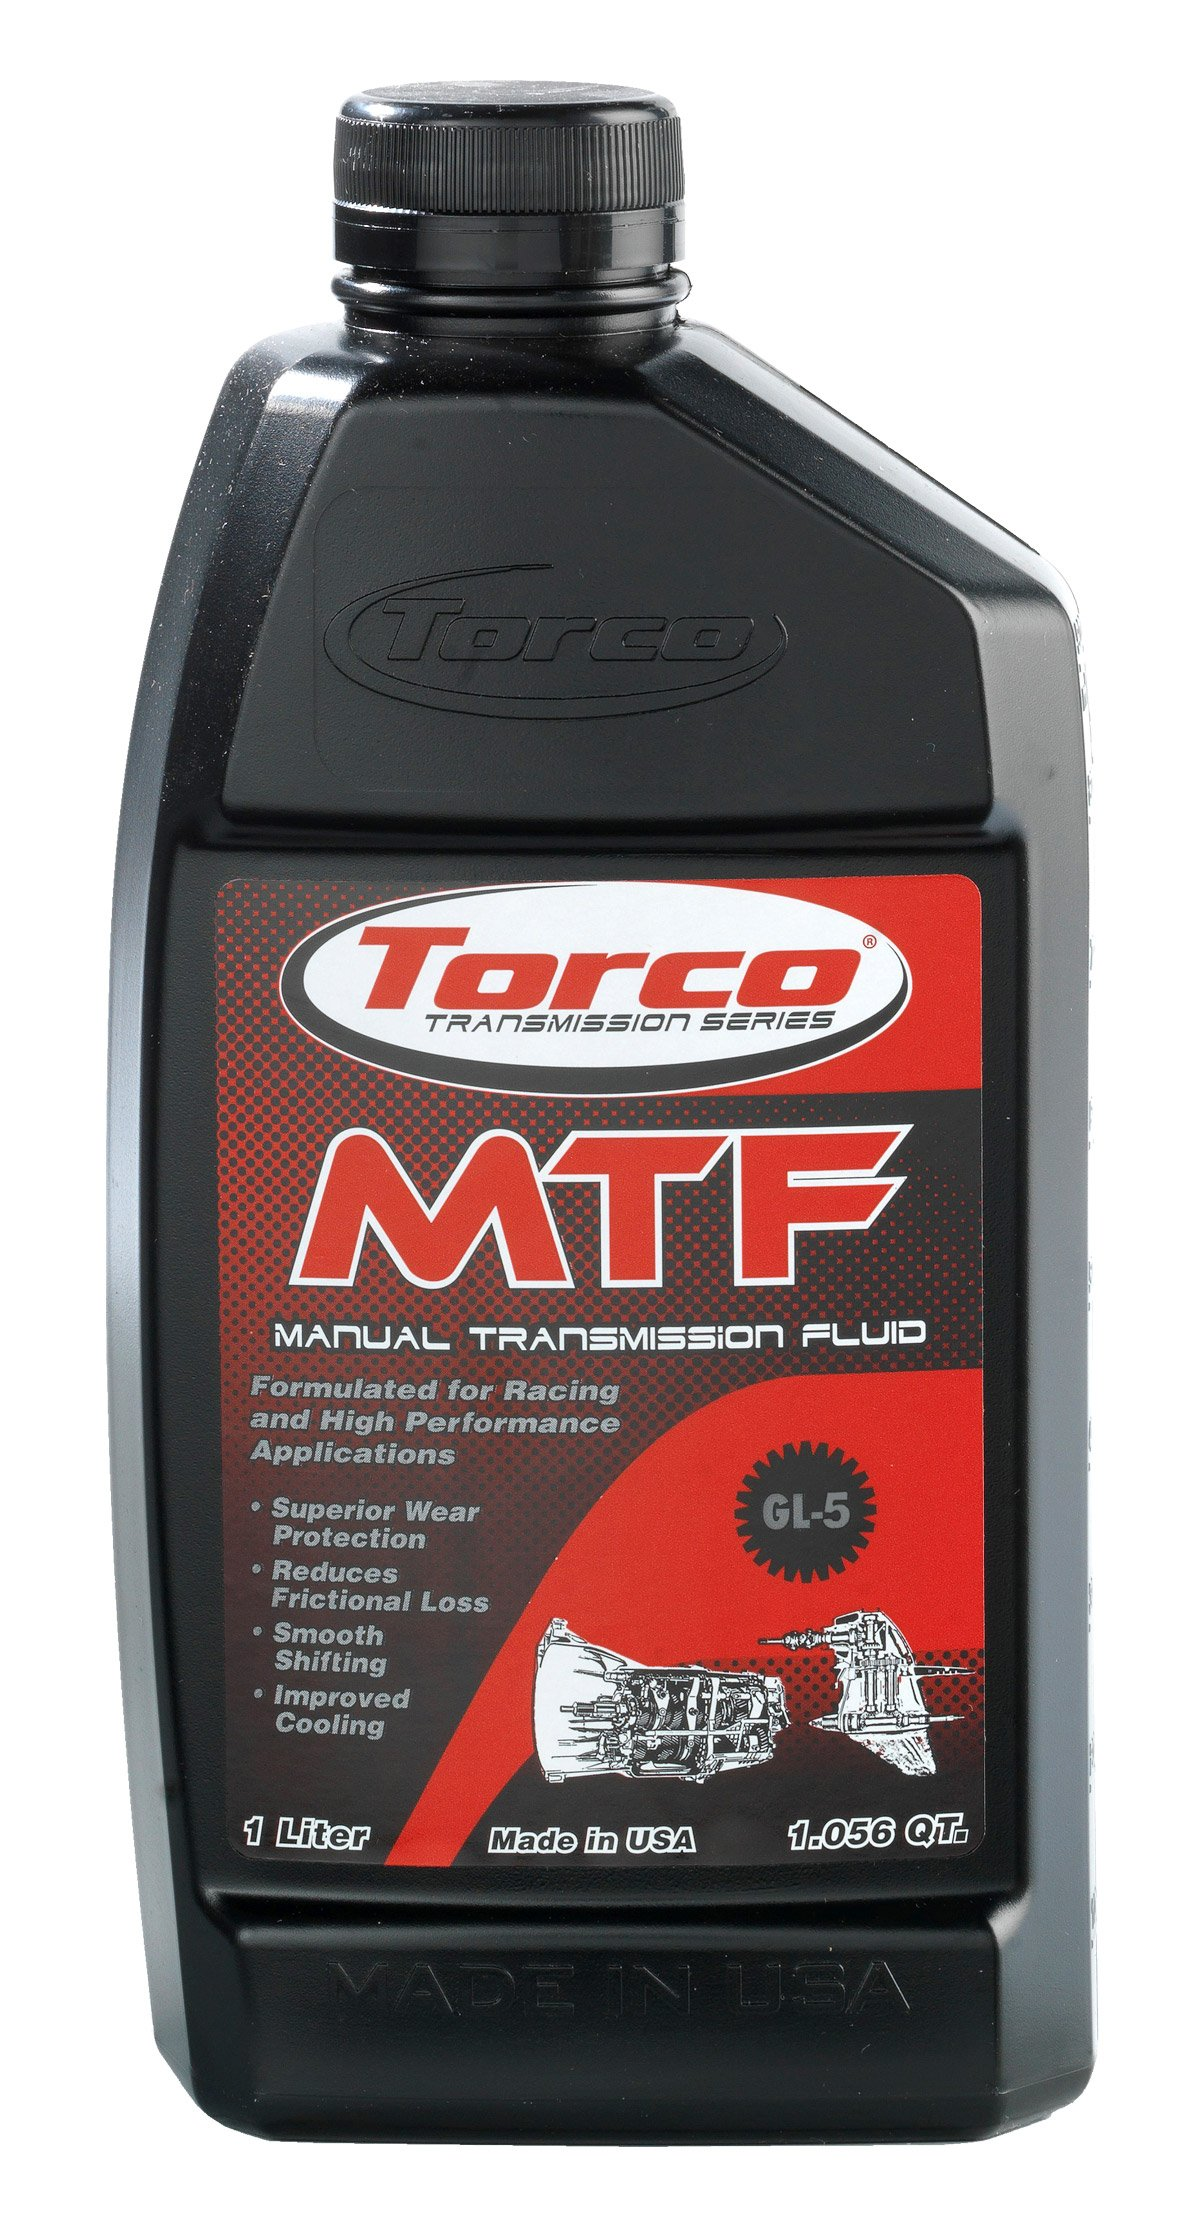 Torco A200022CE MTF Manual Transmission Fluid